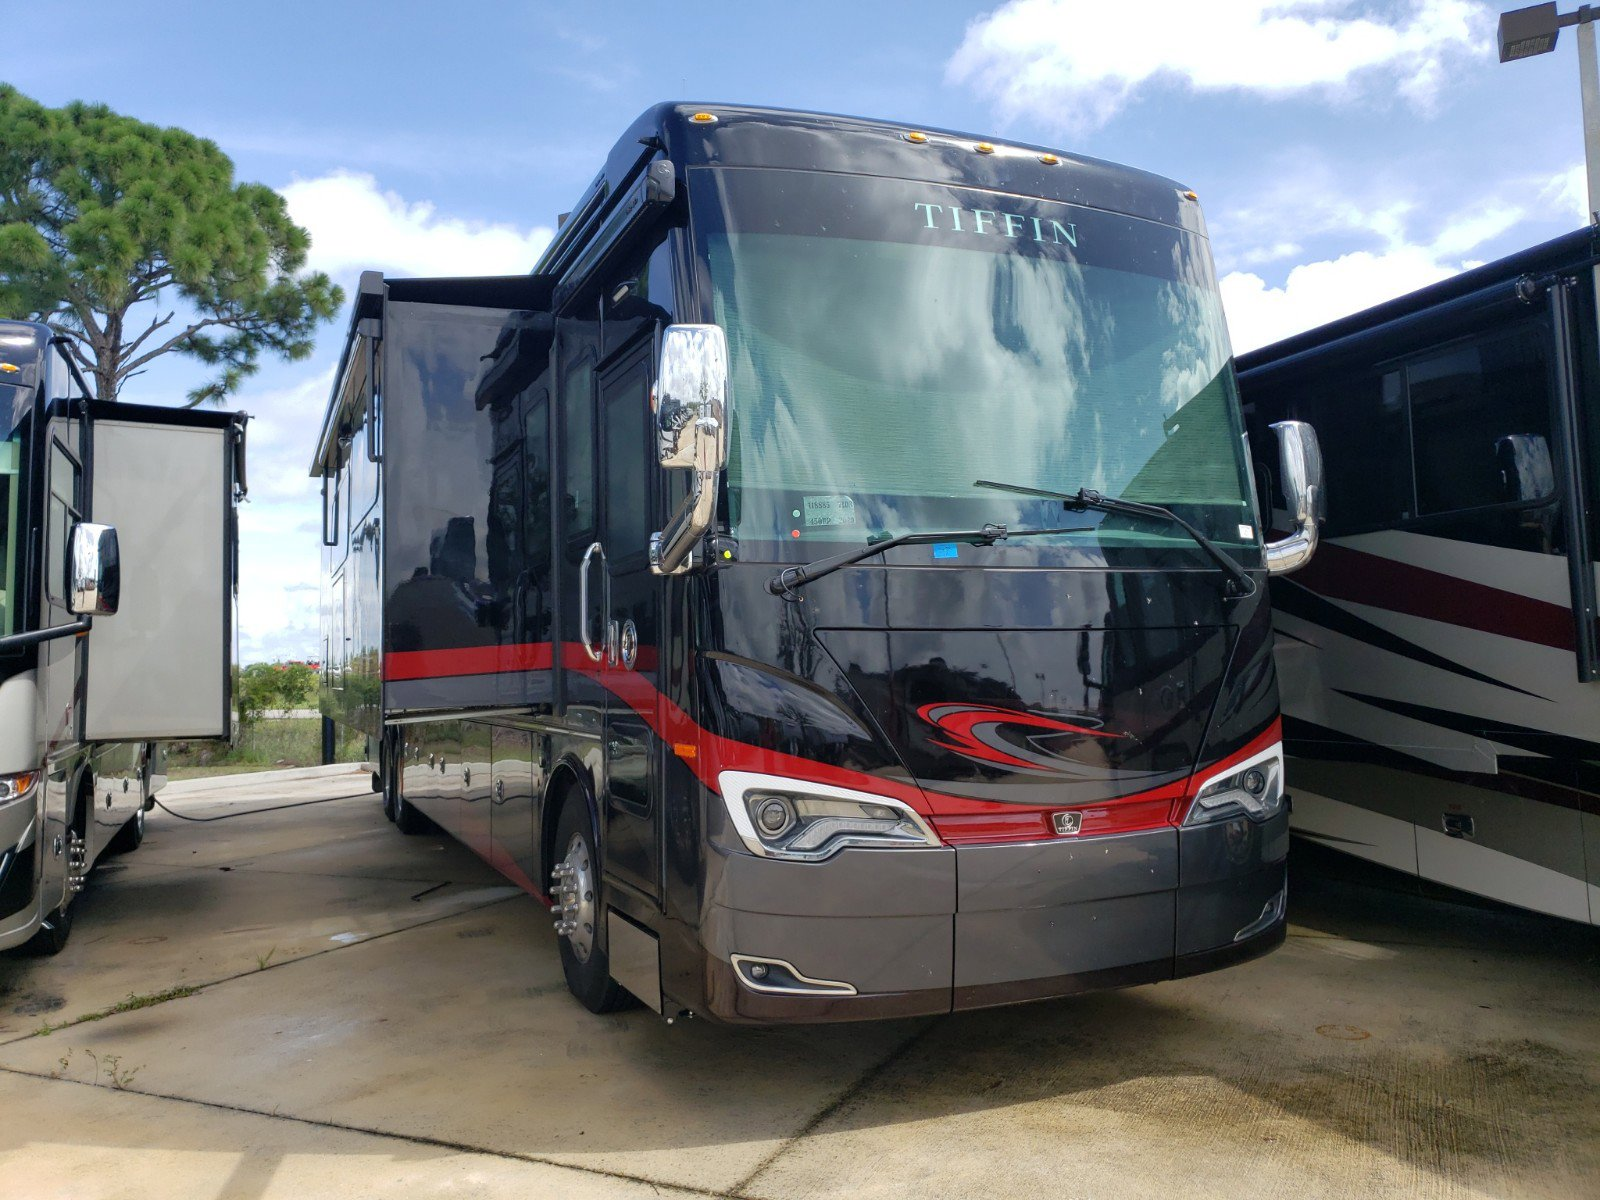 RV Inventory | Giant Recreation World | Central Florida's #1 RV Dealer